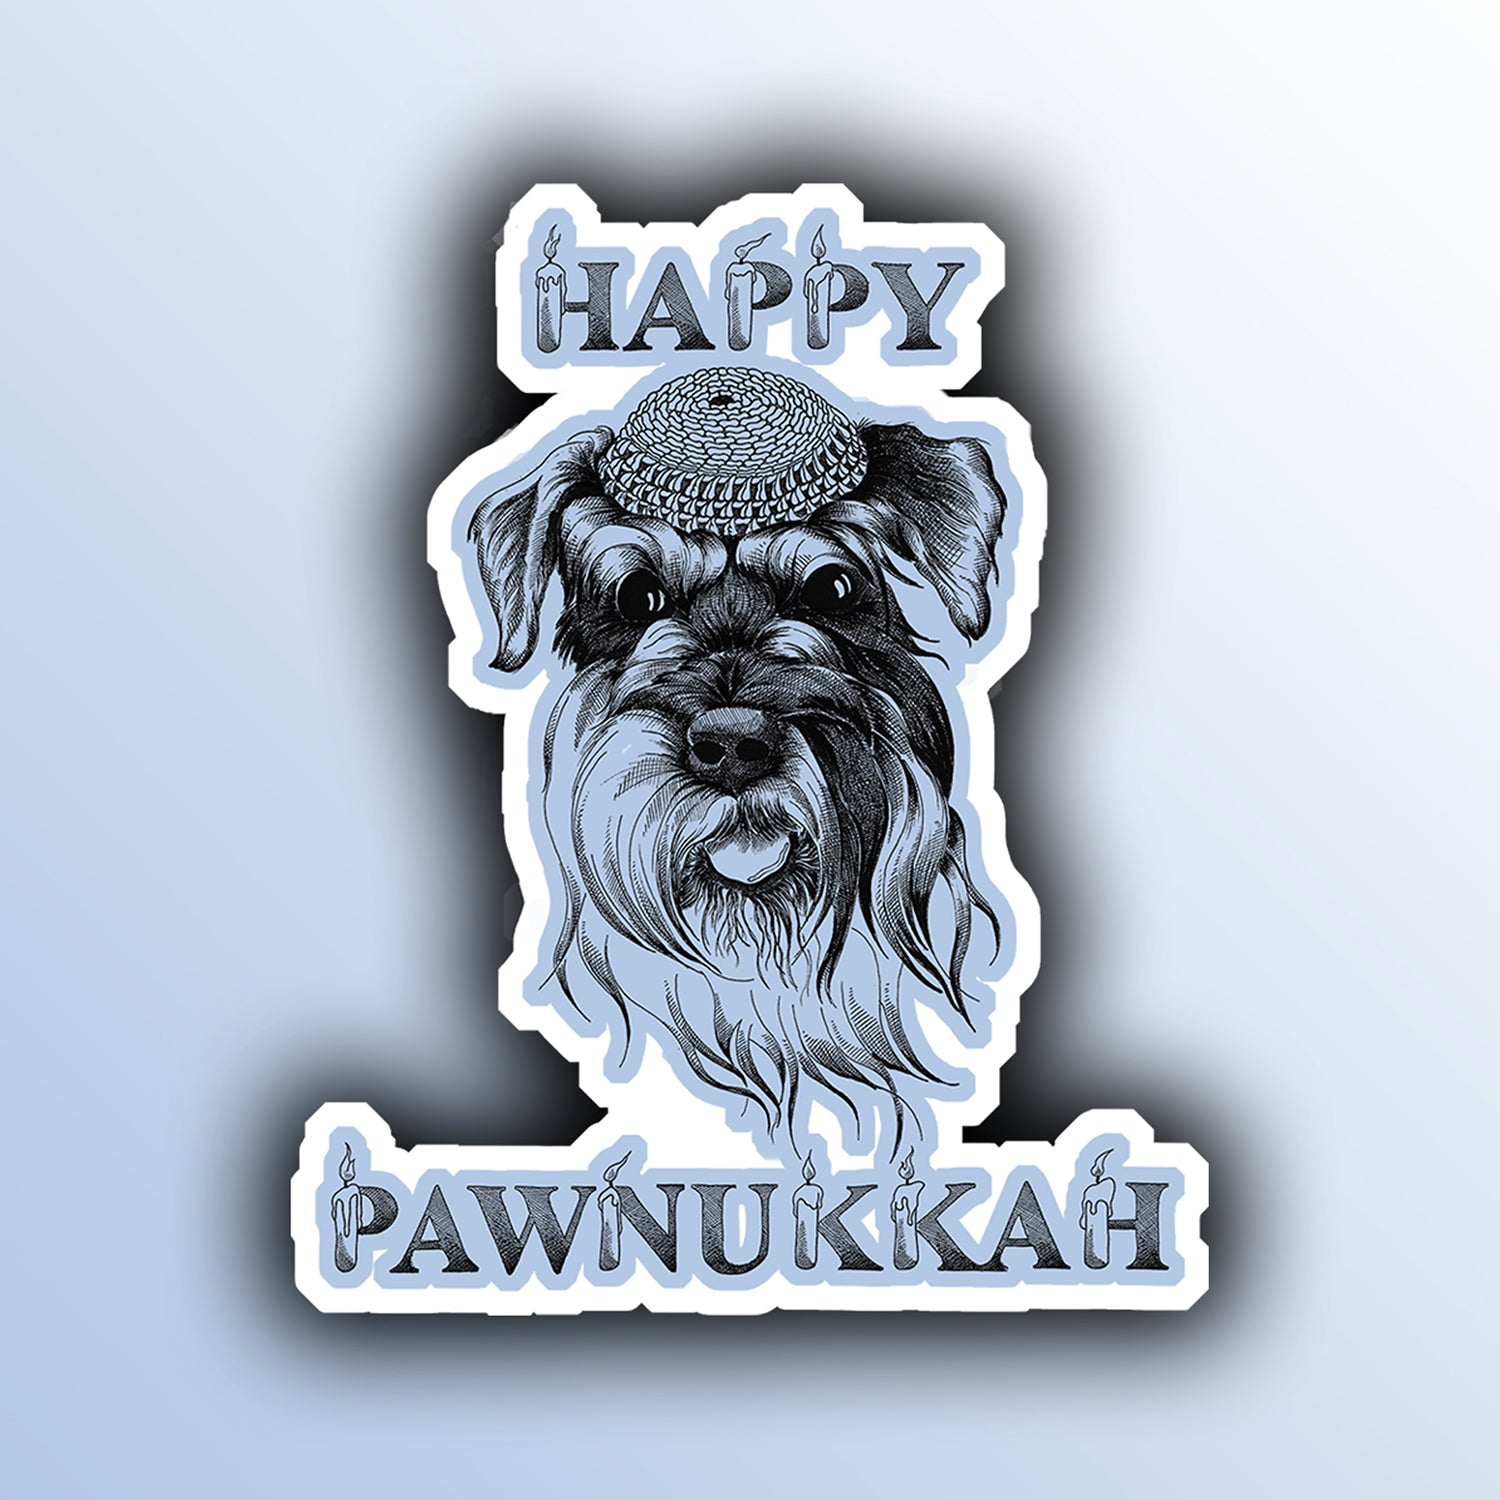 funny hanukkah holiday sticker with a dog animal pun